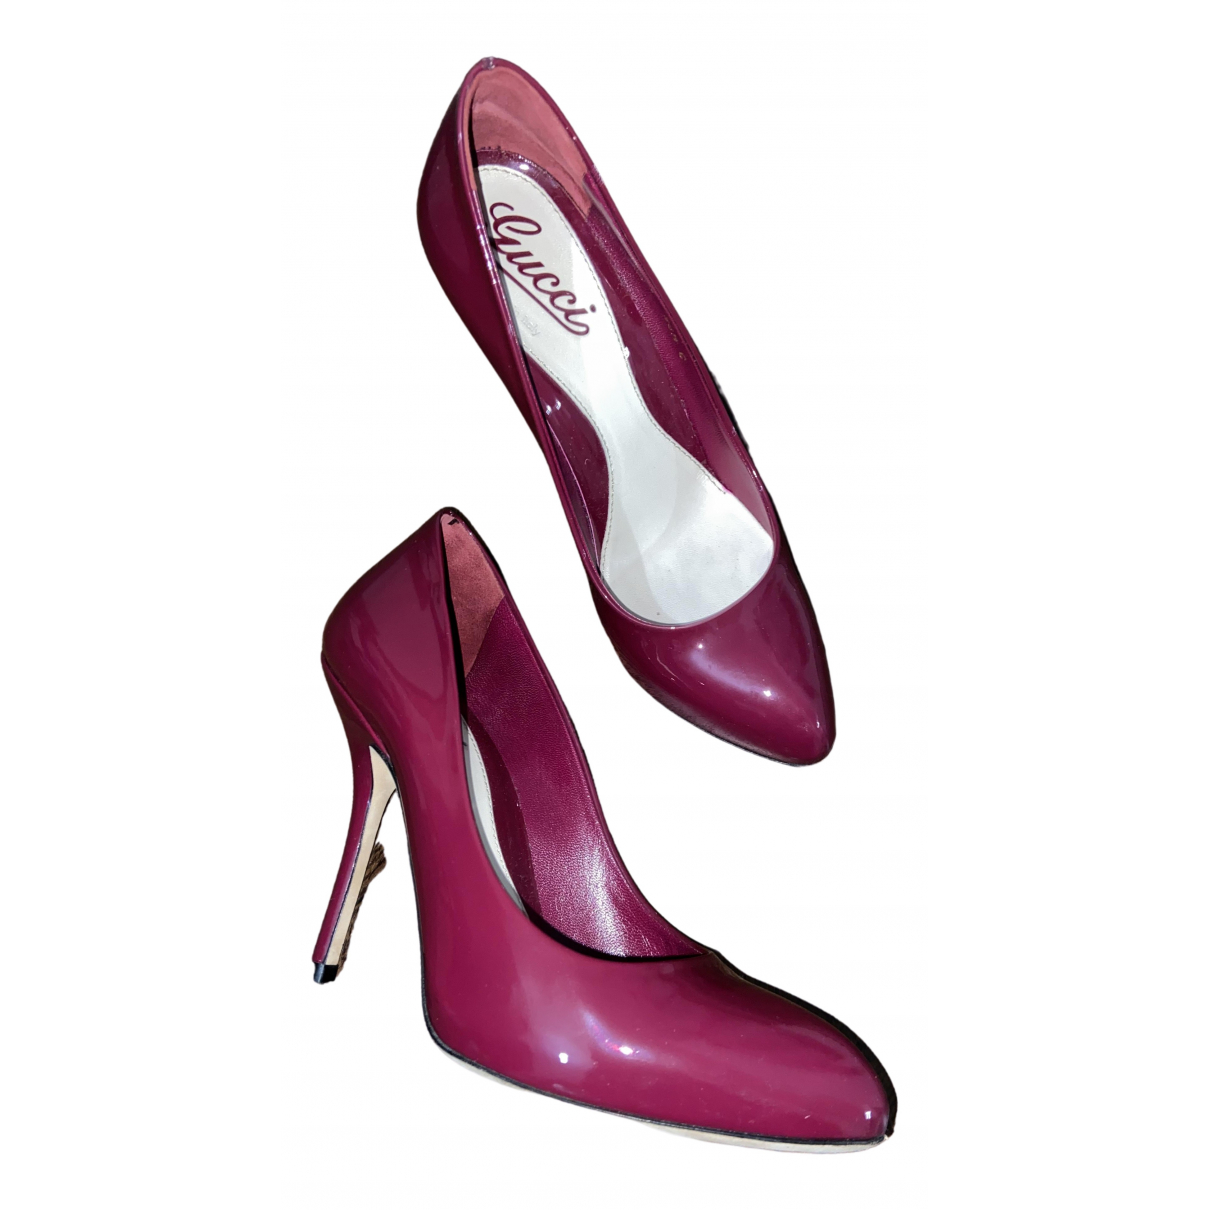 Gucci \N Pink Patent leather Heels for Women 36.5 IT